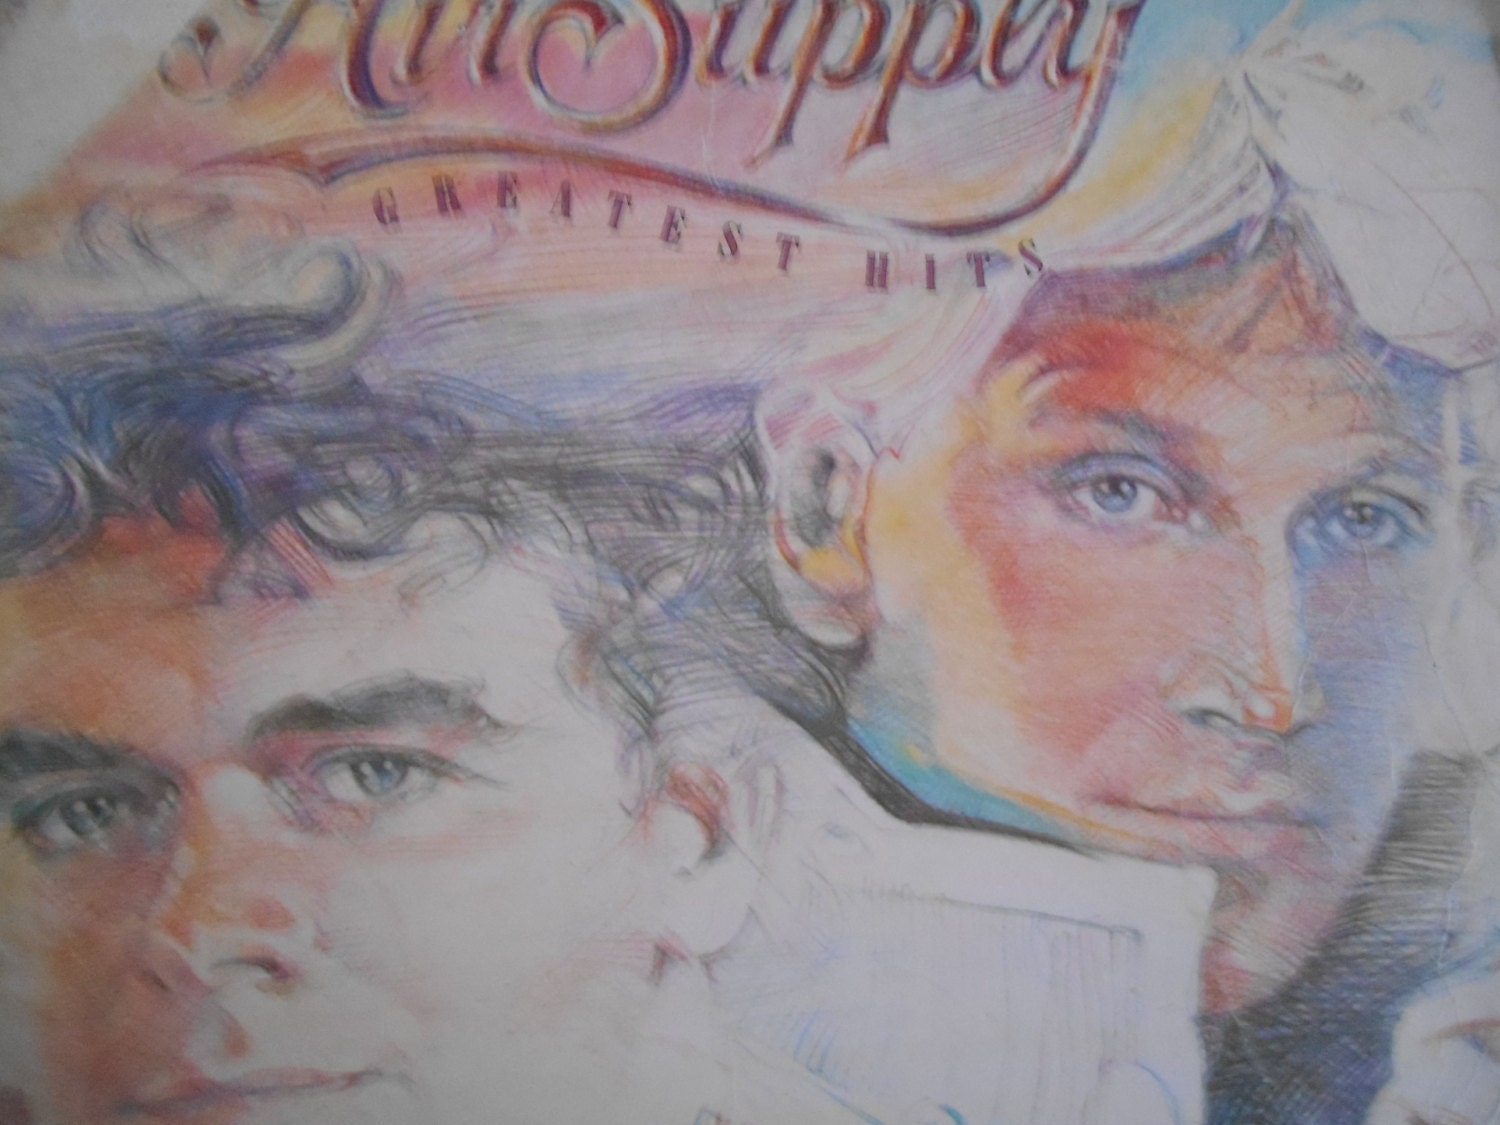 Air supply greatest hits songs